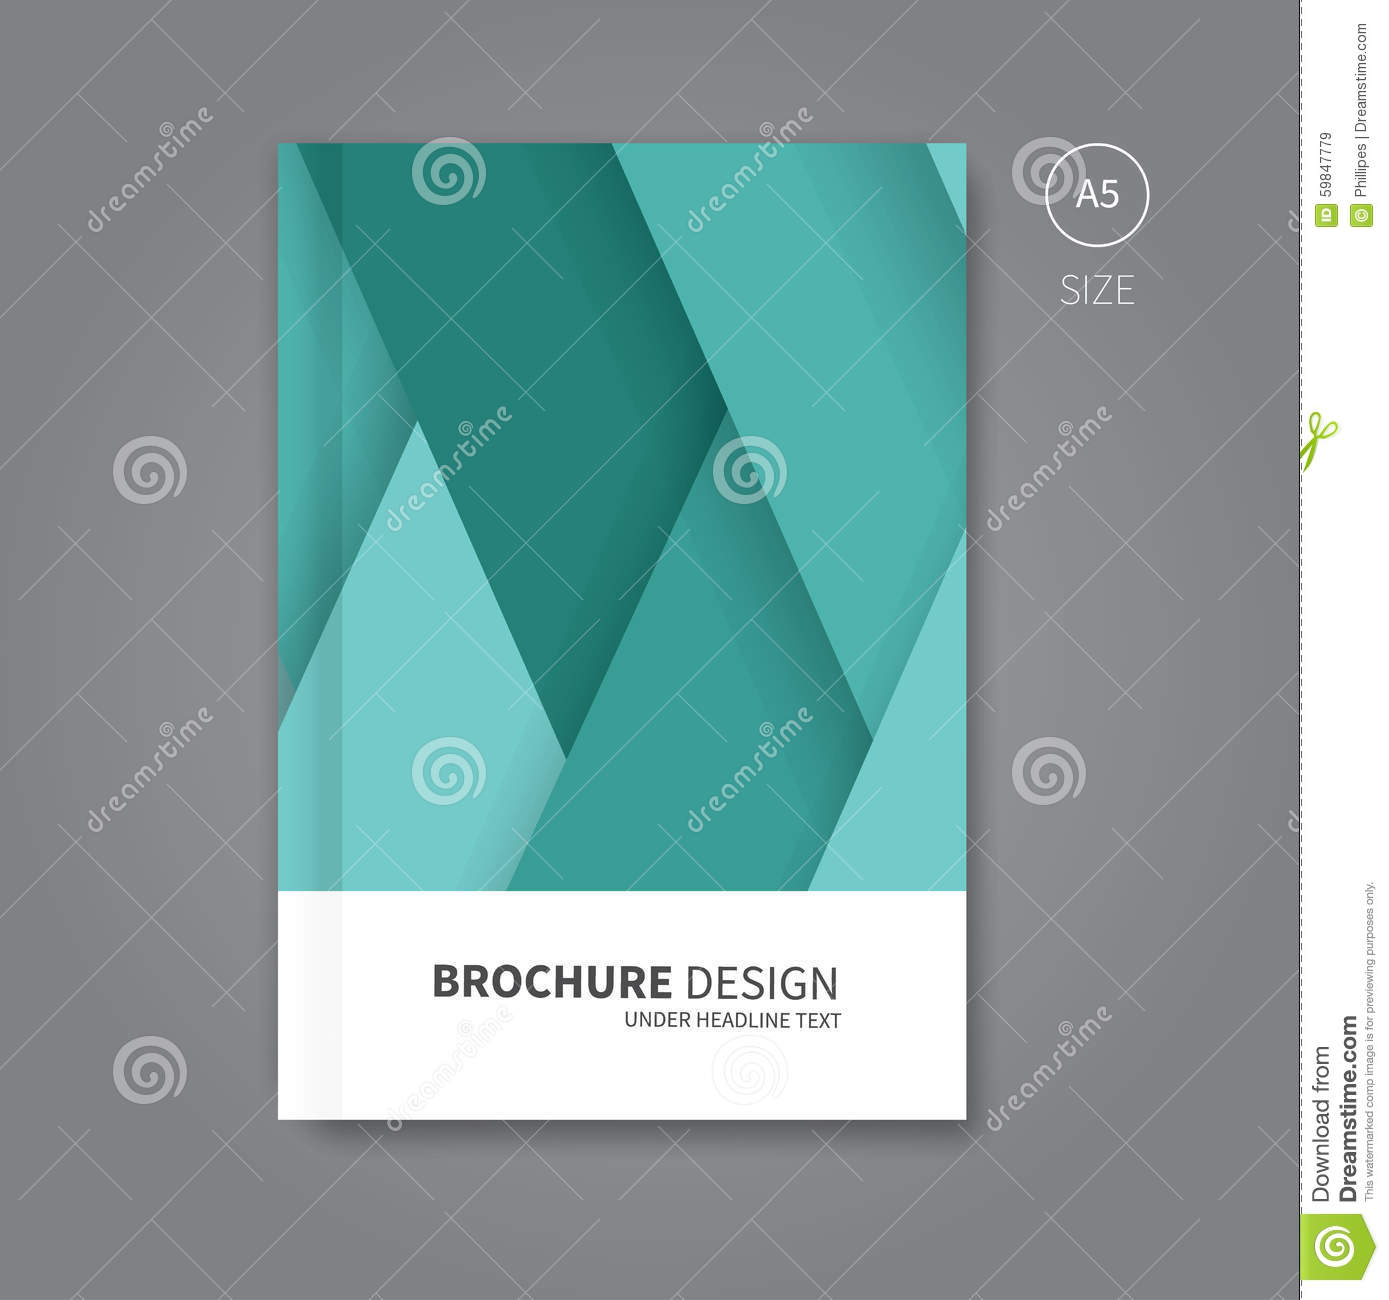 Book Cover Design Template Vector Illustration Free Download ~ Vector book cover template design stock image